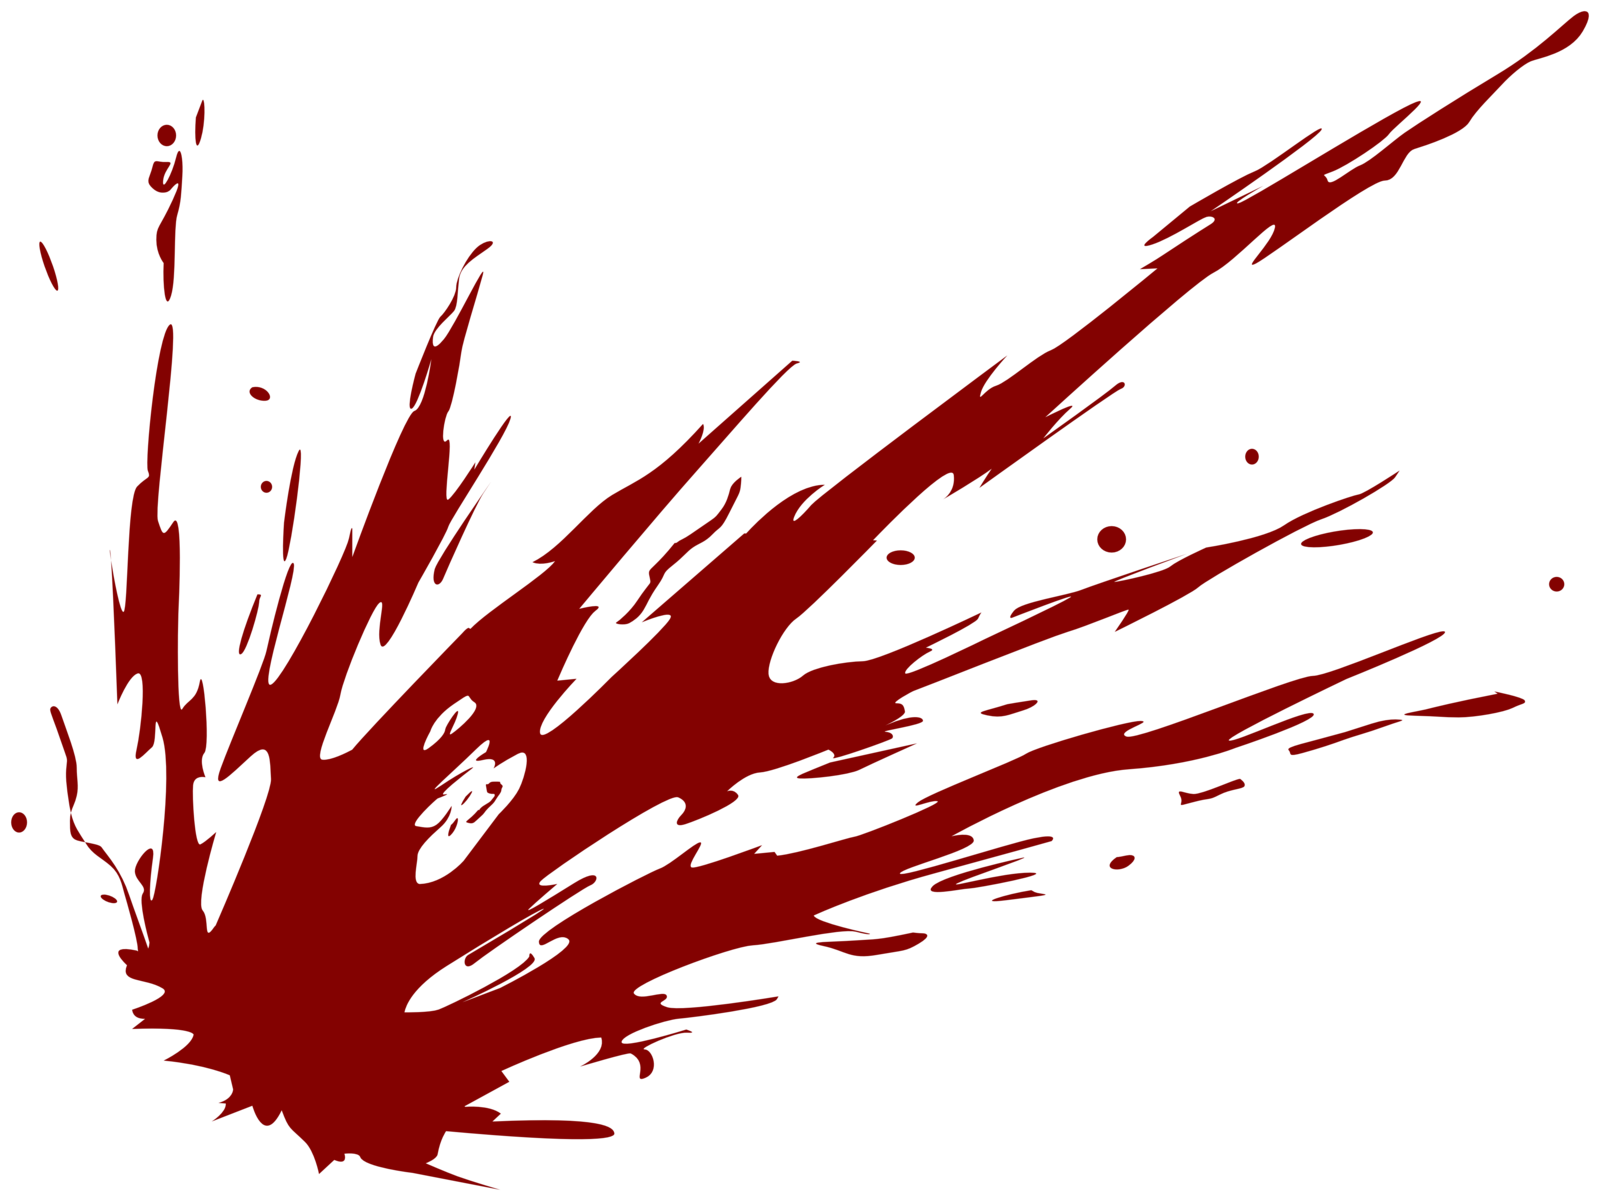 Blood Splatter Png - Cliparts.co